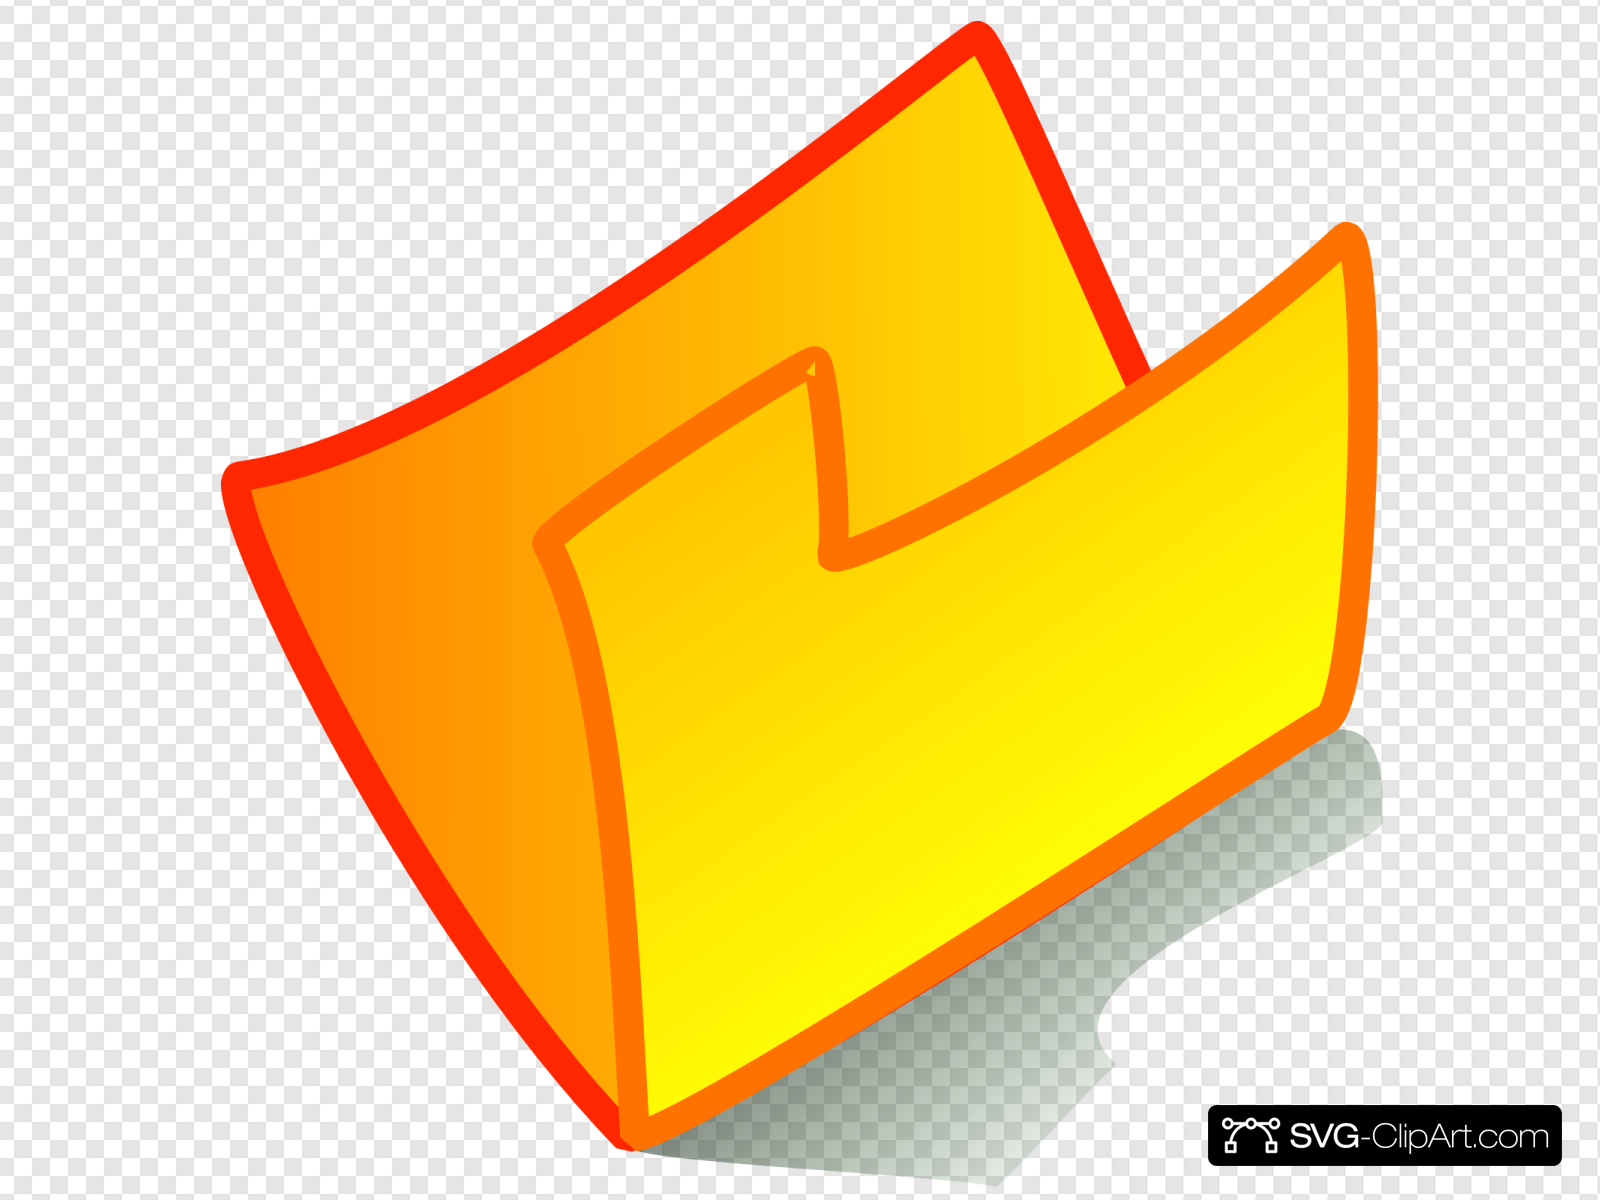 Yellow Folder Clip art, Icon and SVG.